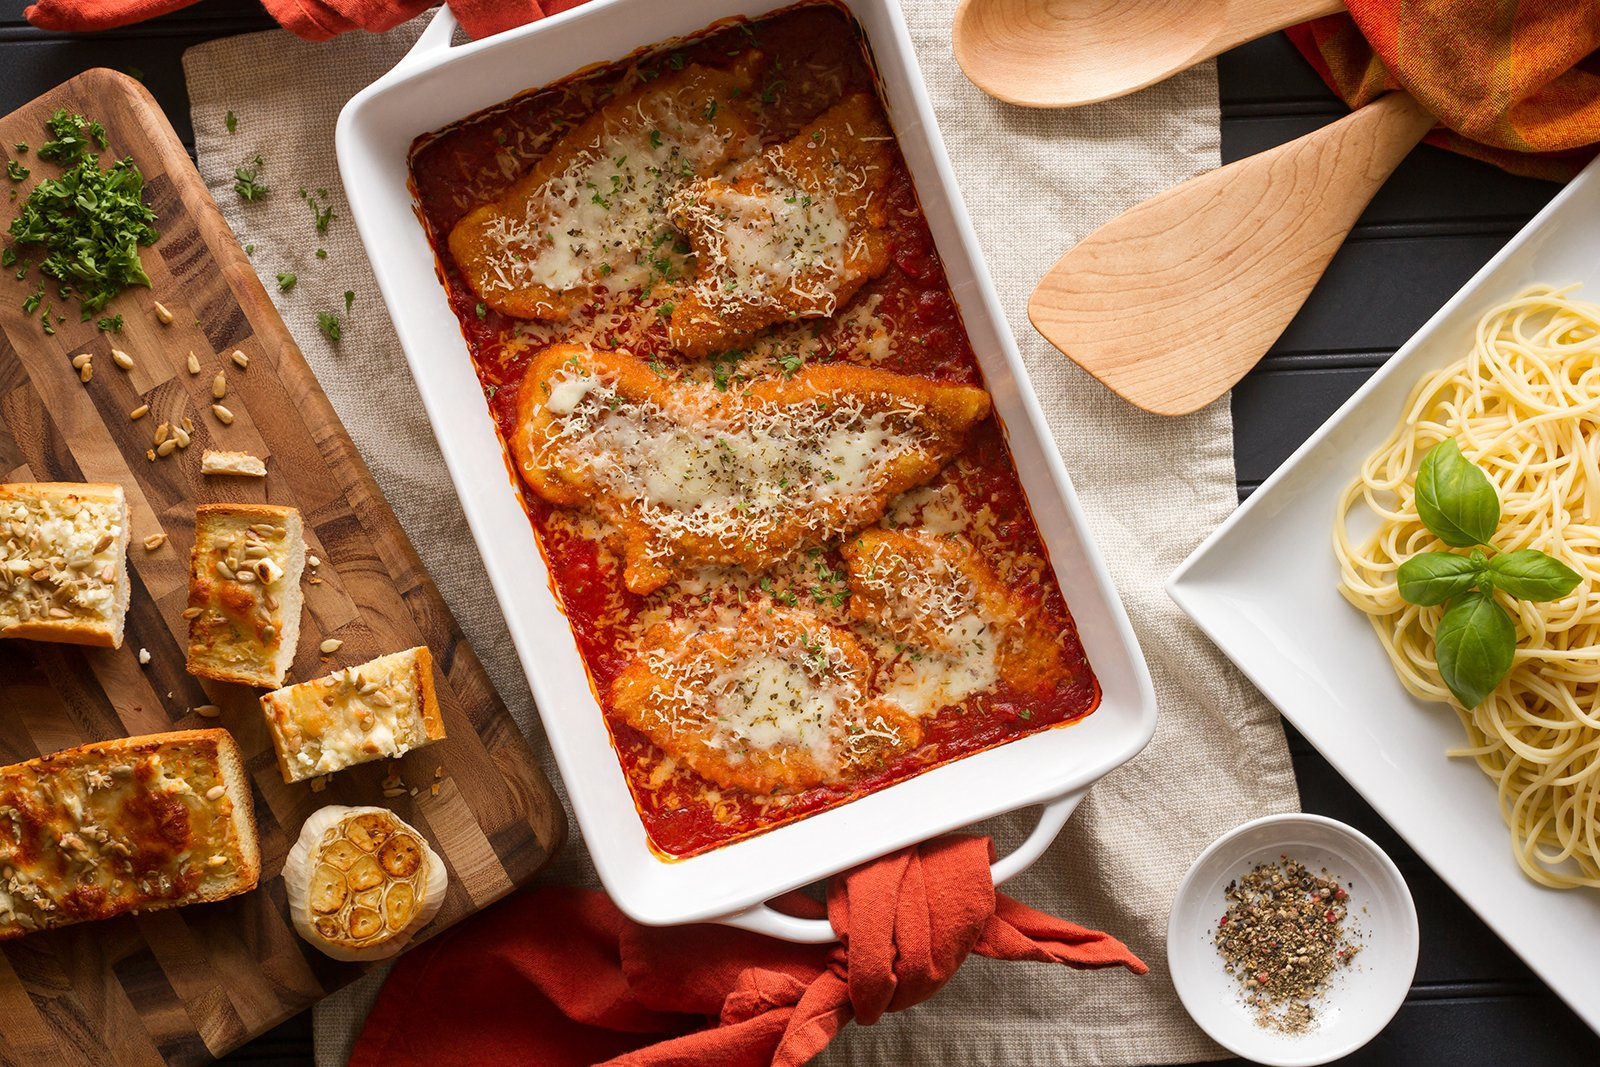 Dish with Chicken Parmigiana and Garlic Bread to the left